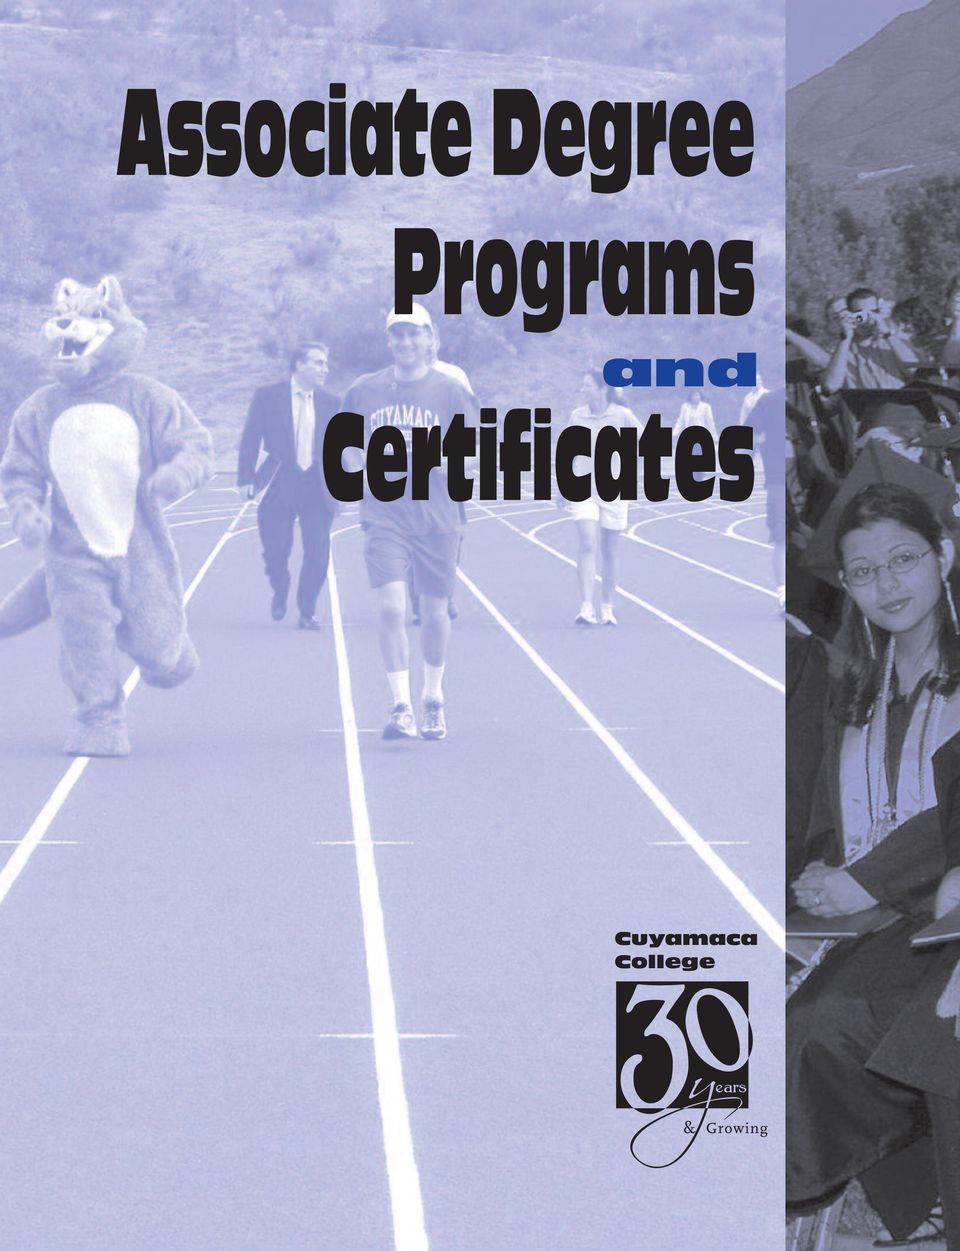 Programs and